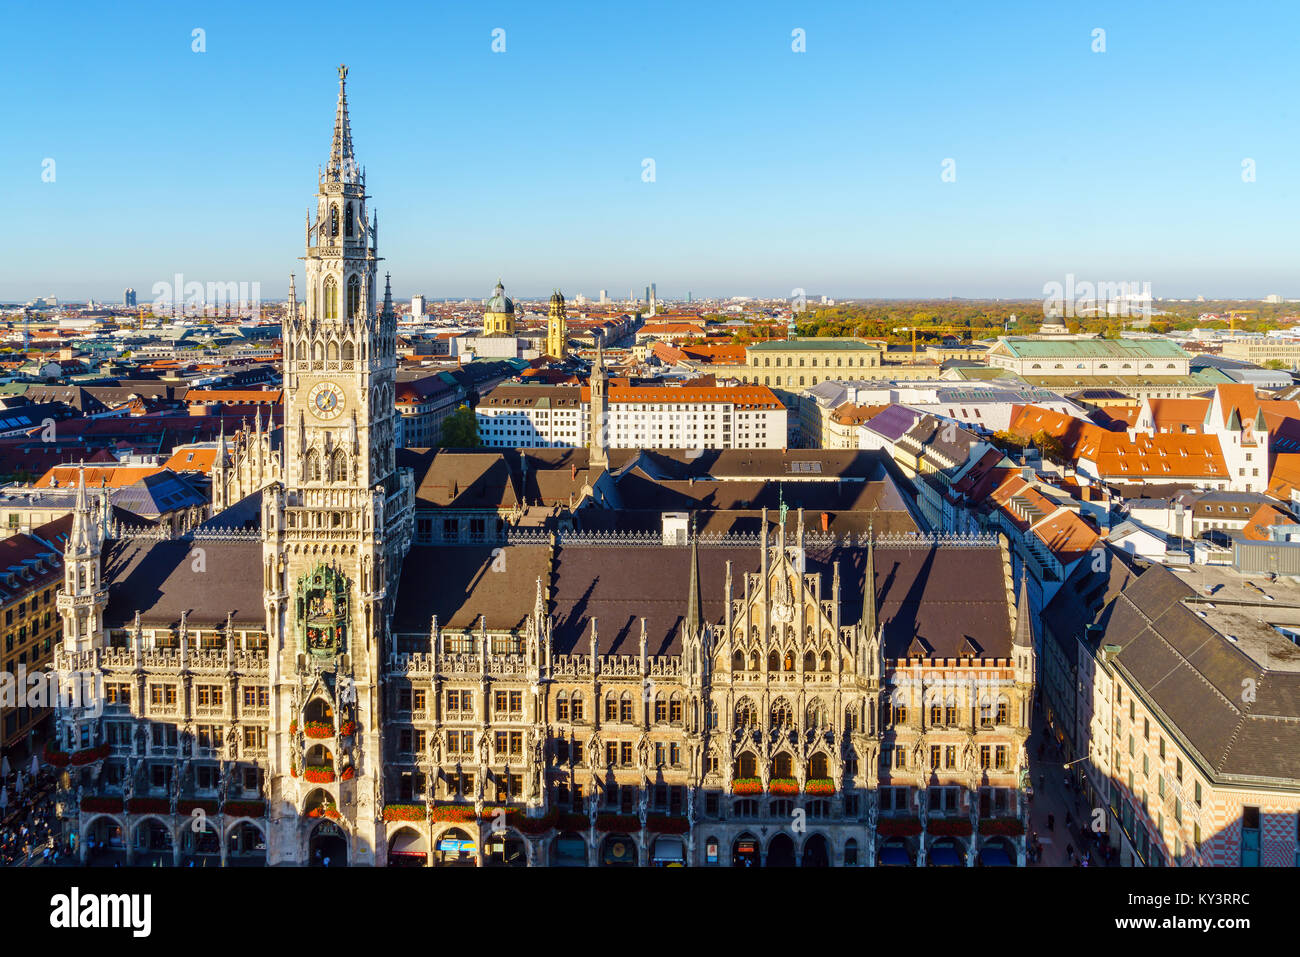 Aerial view of The New Town Hall and Marienplatz before sunset, Munich city, Bavaria, Germany - Stock Image